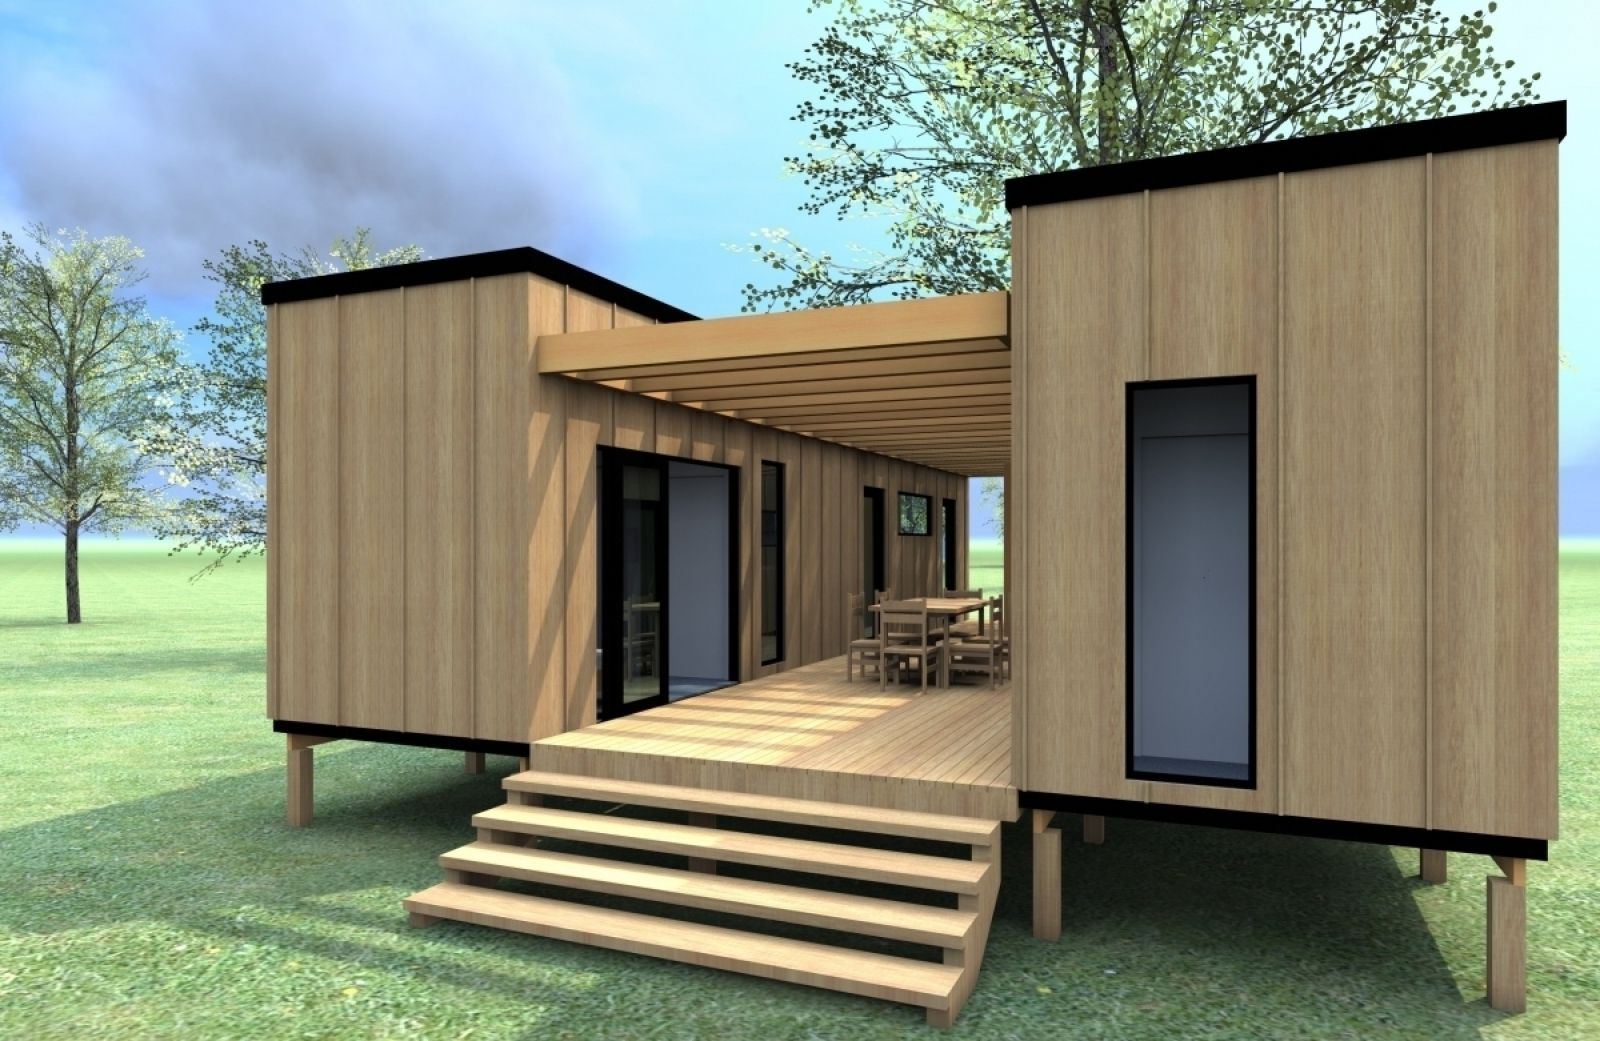 image result for shipping container conversions  my future home  - image result for shipping container conversions